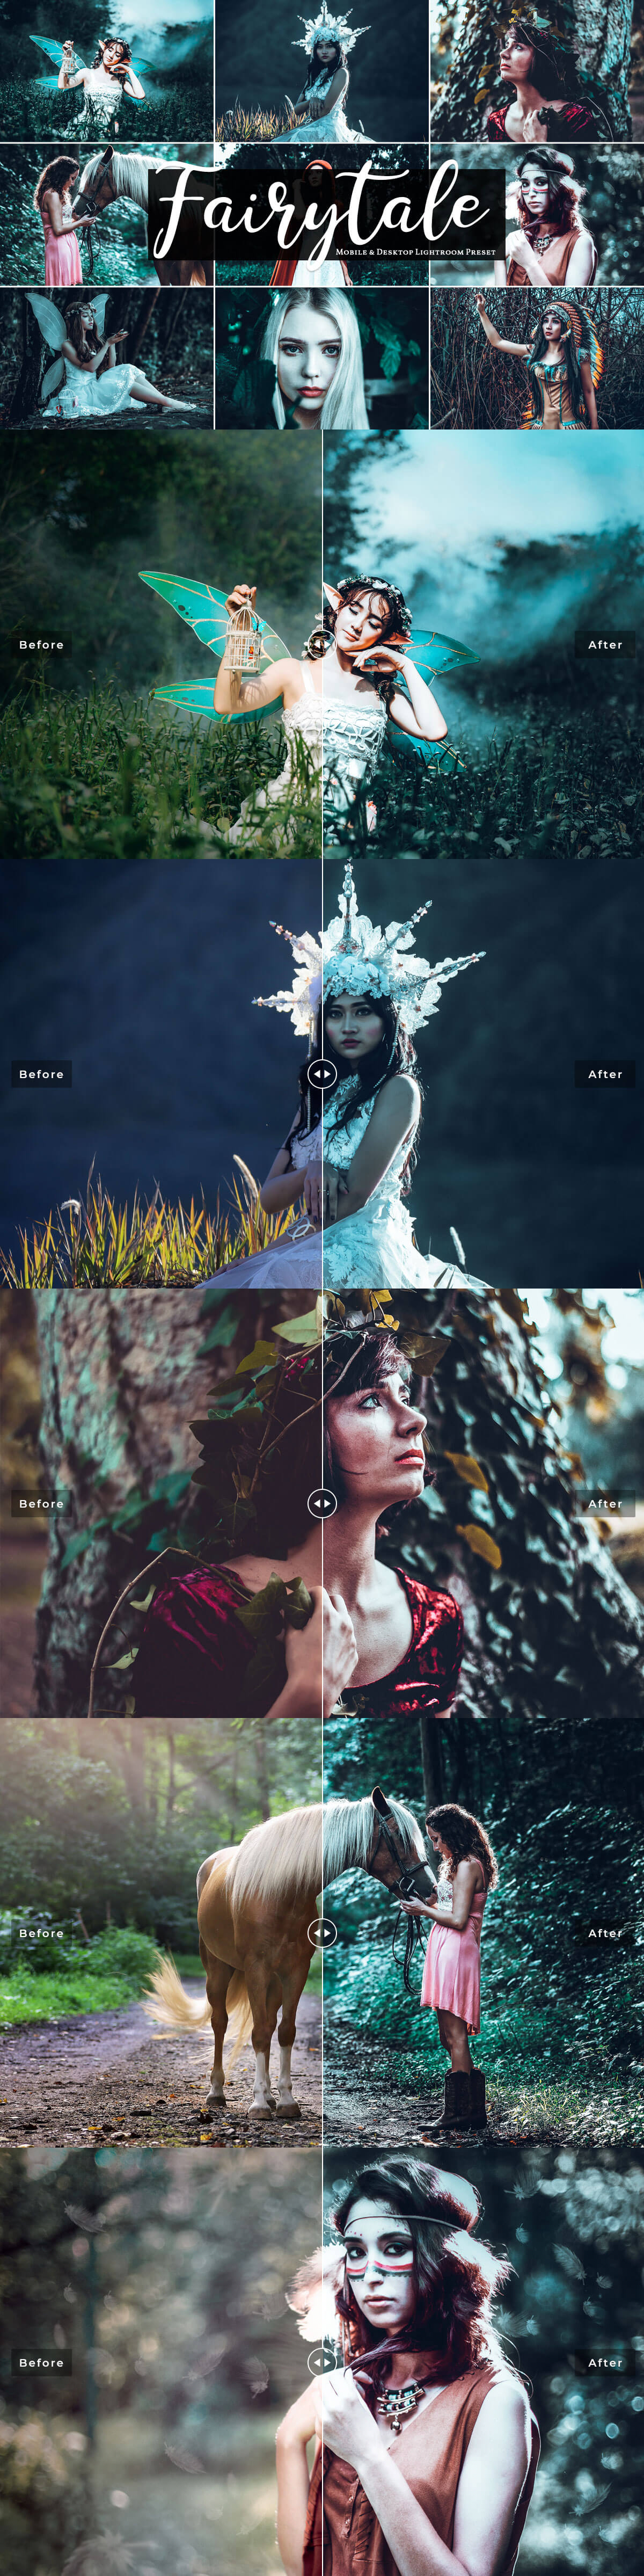 Free Fairytale Mobile & Desktop Lightroom Presets Cover